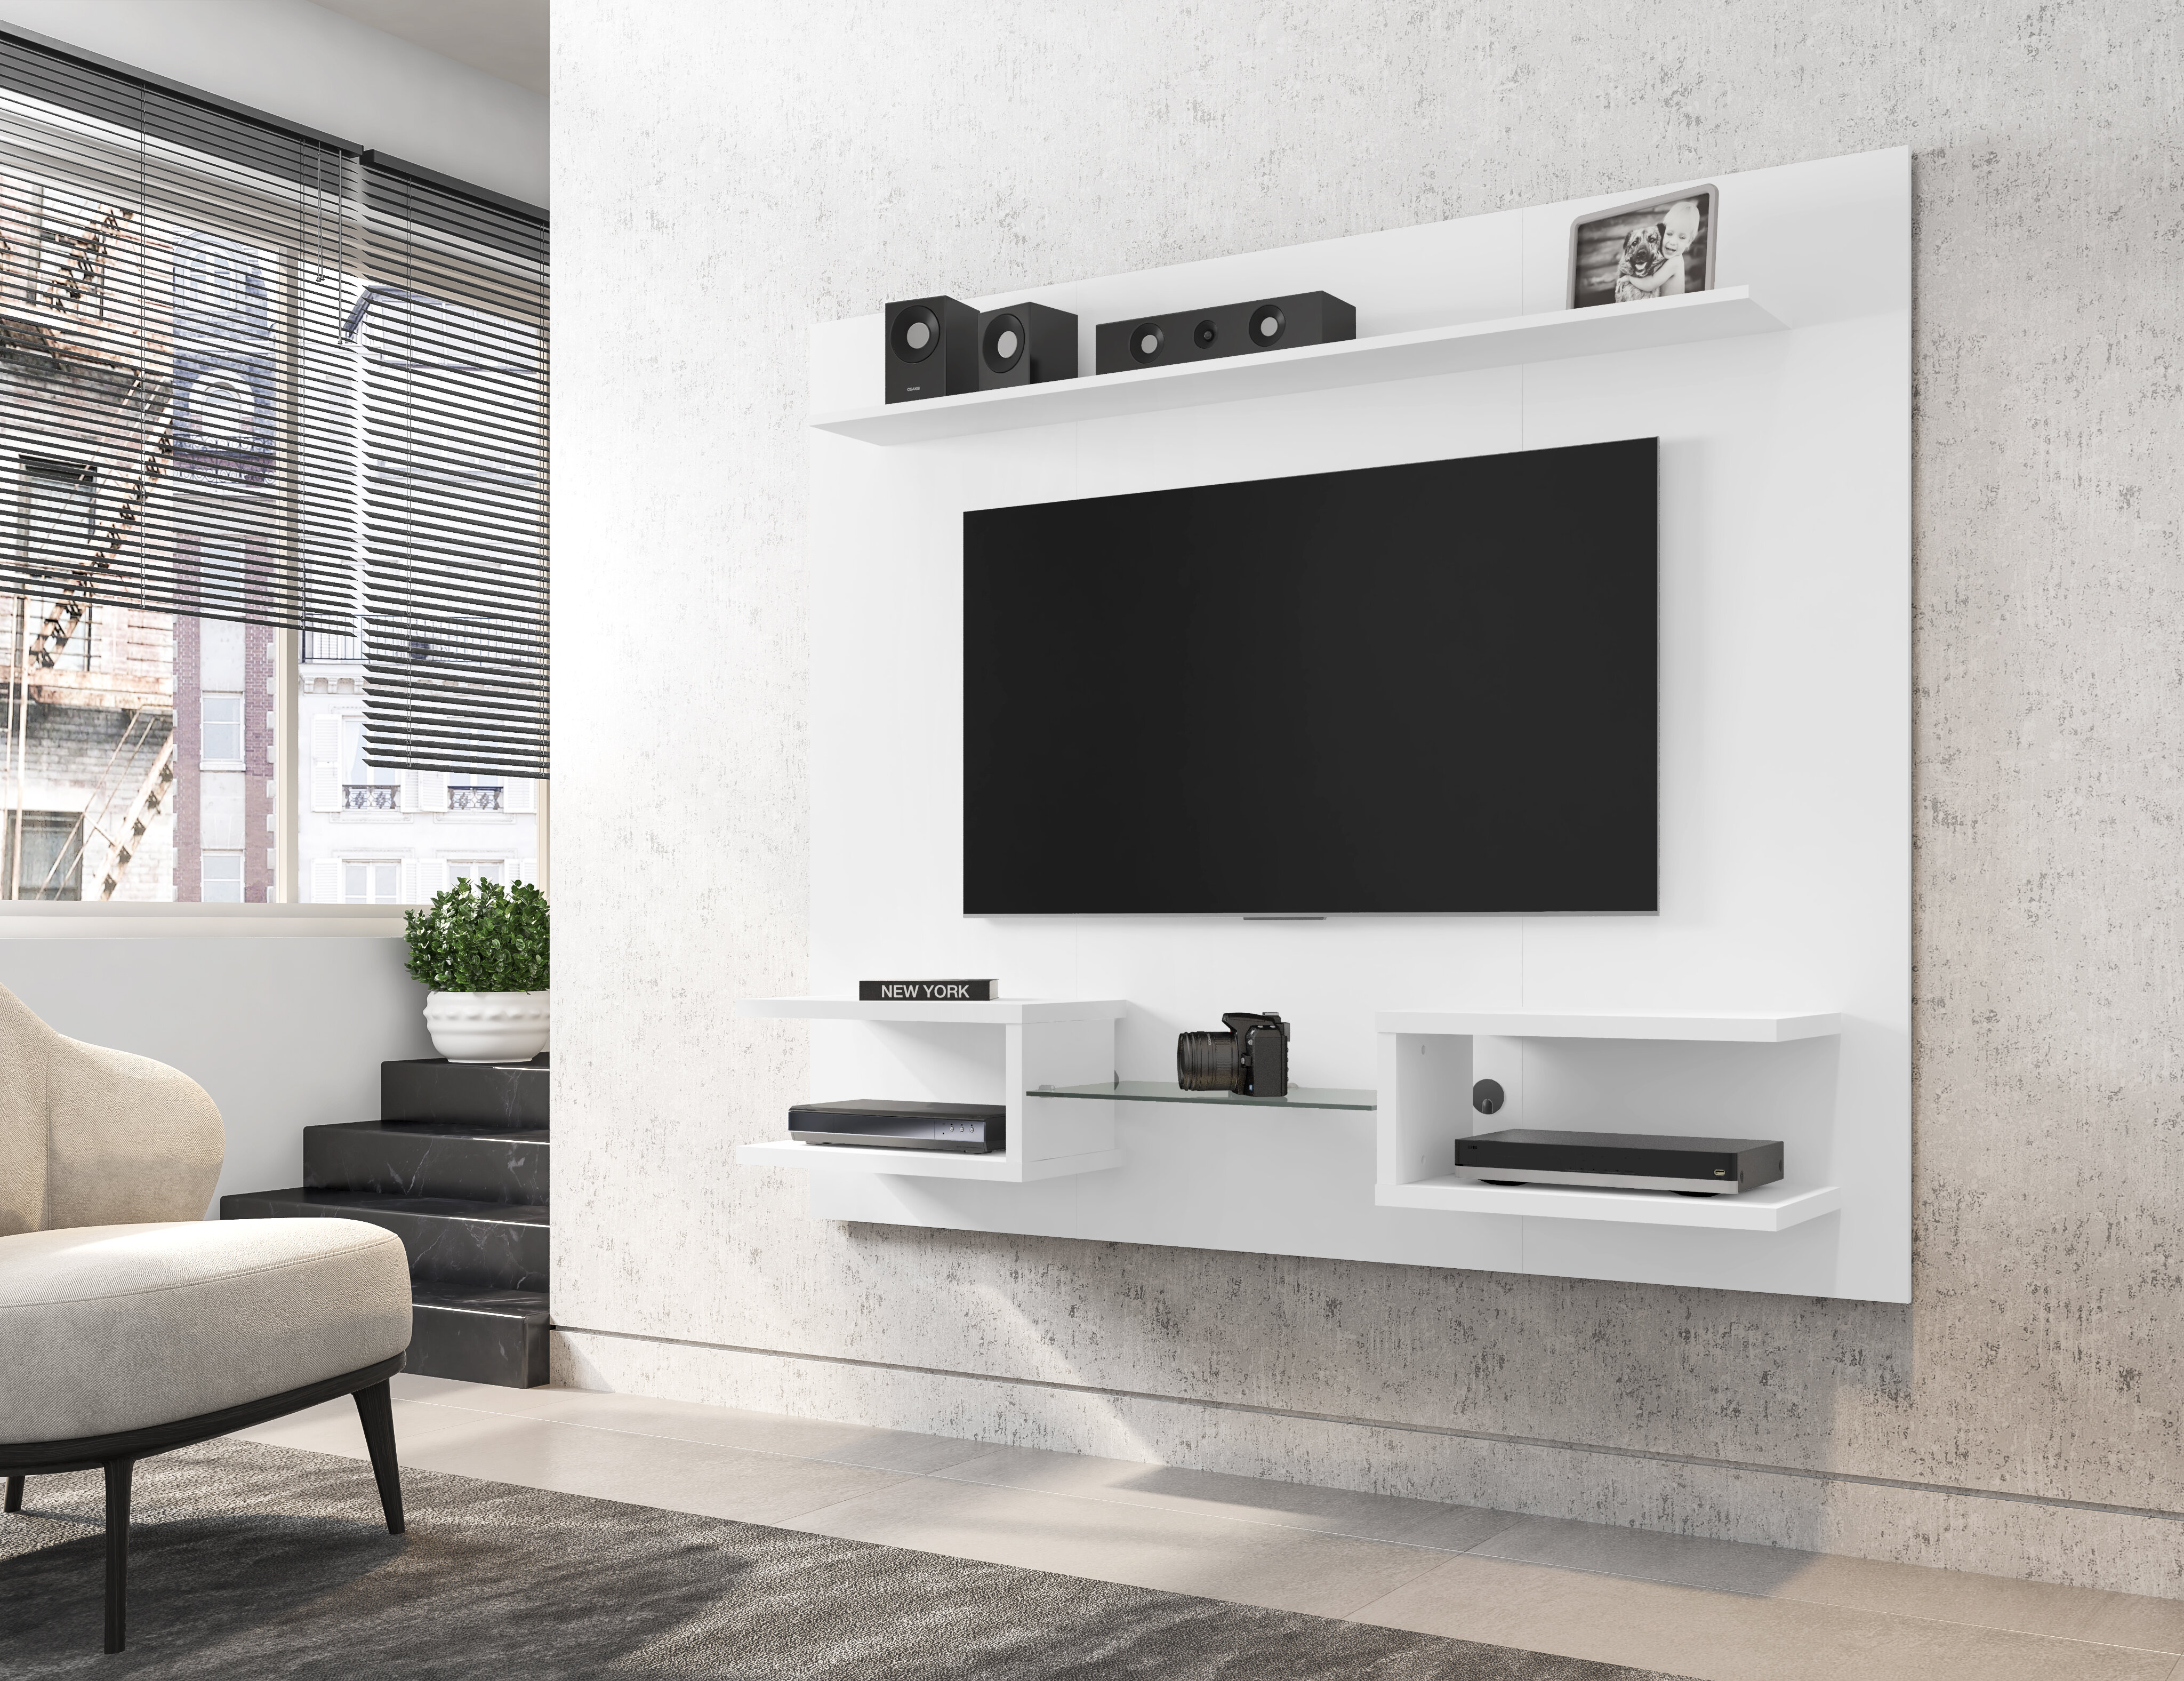 wrought studio torgerson 6425 modern floating wall entertainment centre with display shelves in off white c